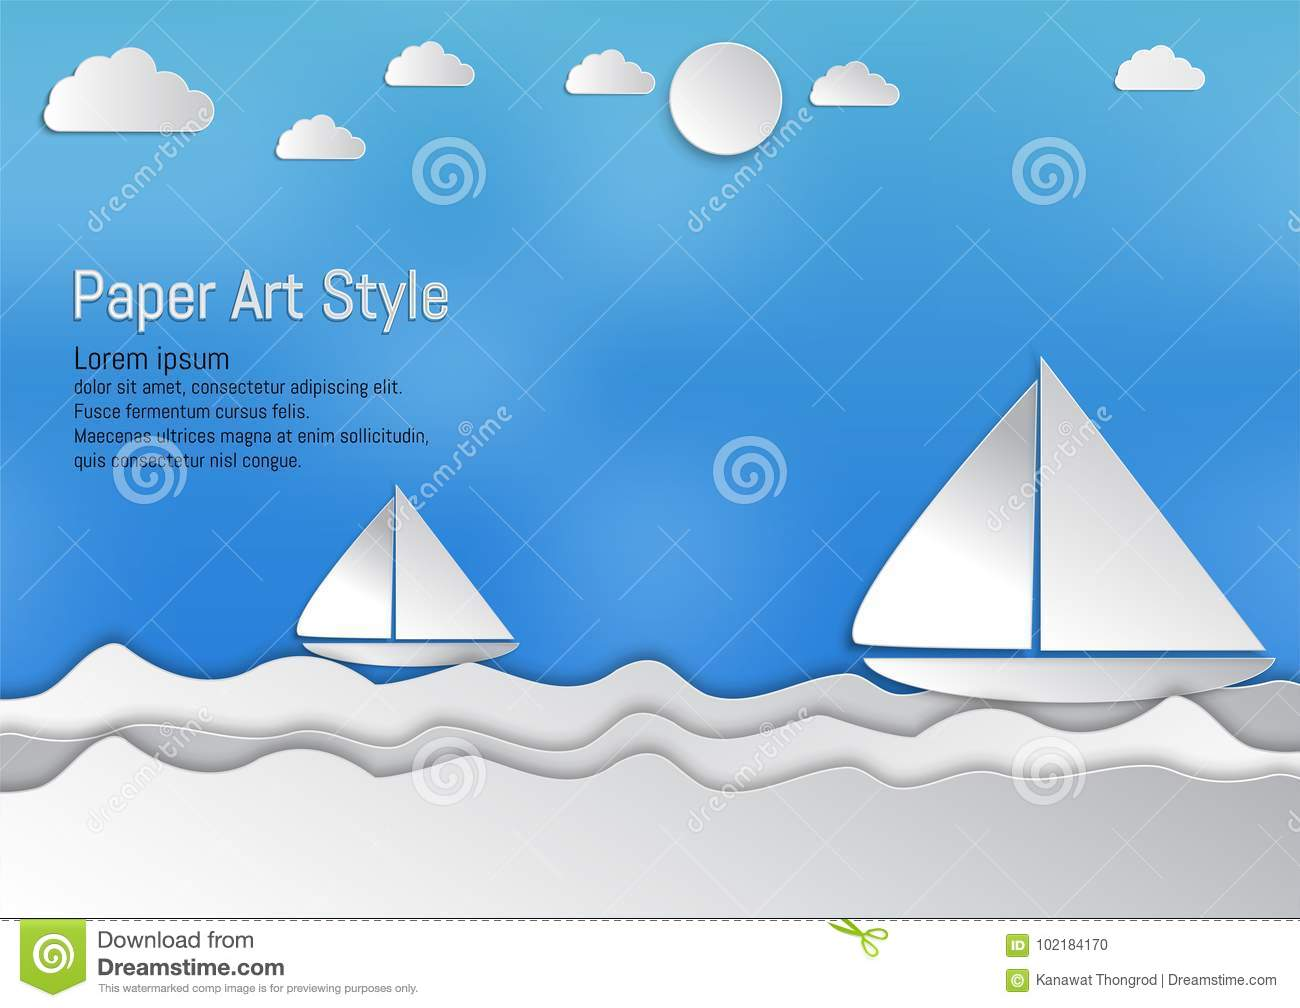 Paper art style, waves with sailboat and clouds, vector illustration